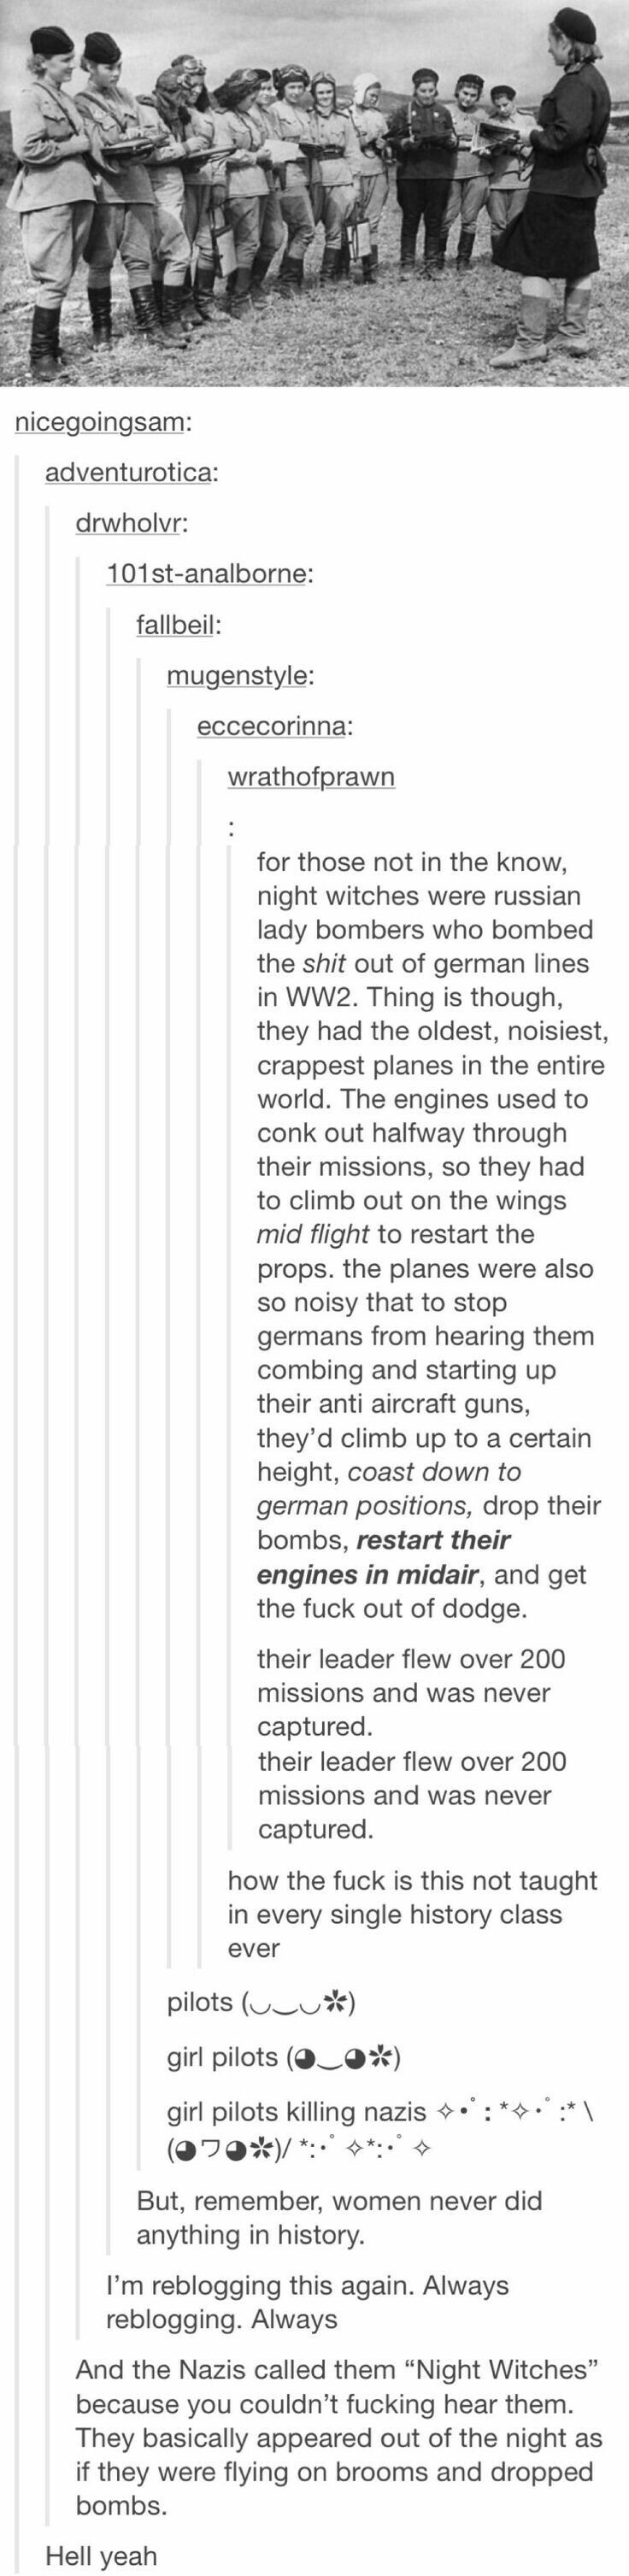 Women of WWII. I was a history major at a liberal arts college and never knew about these badass women until 2 minutes ago. This is AWESOME.